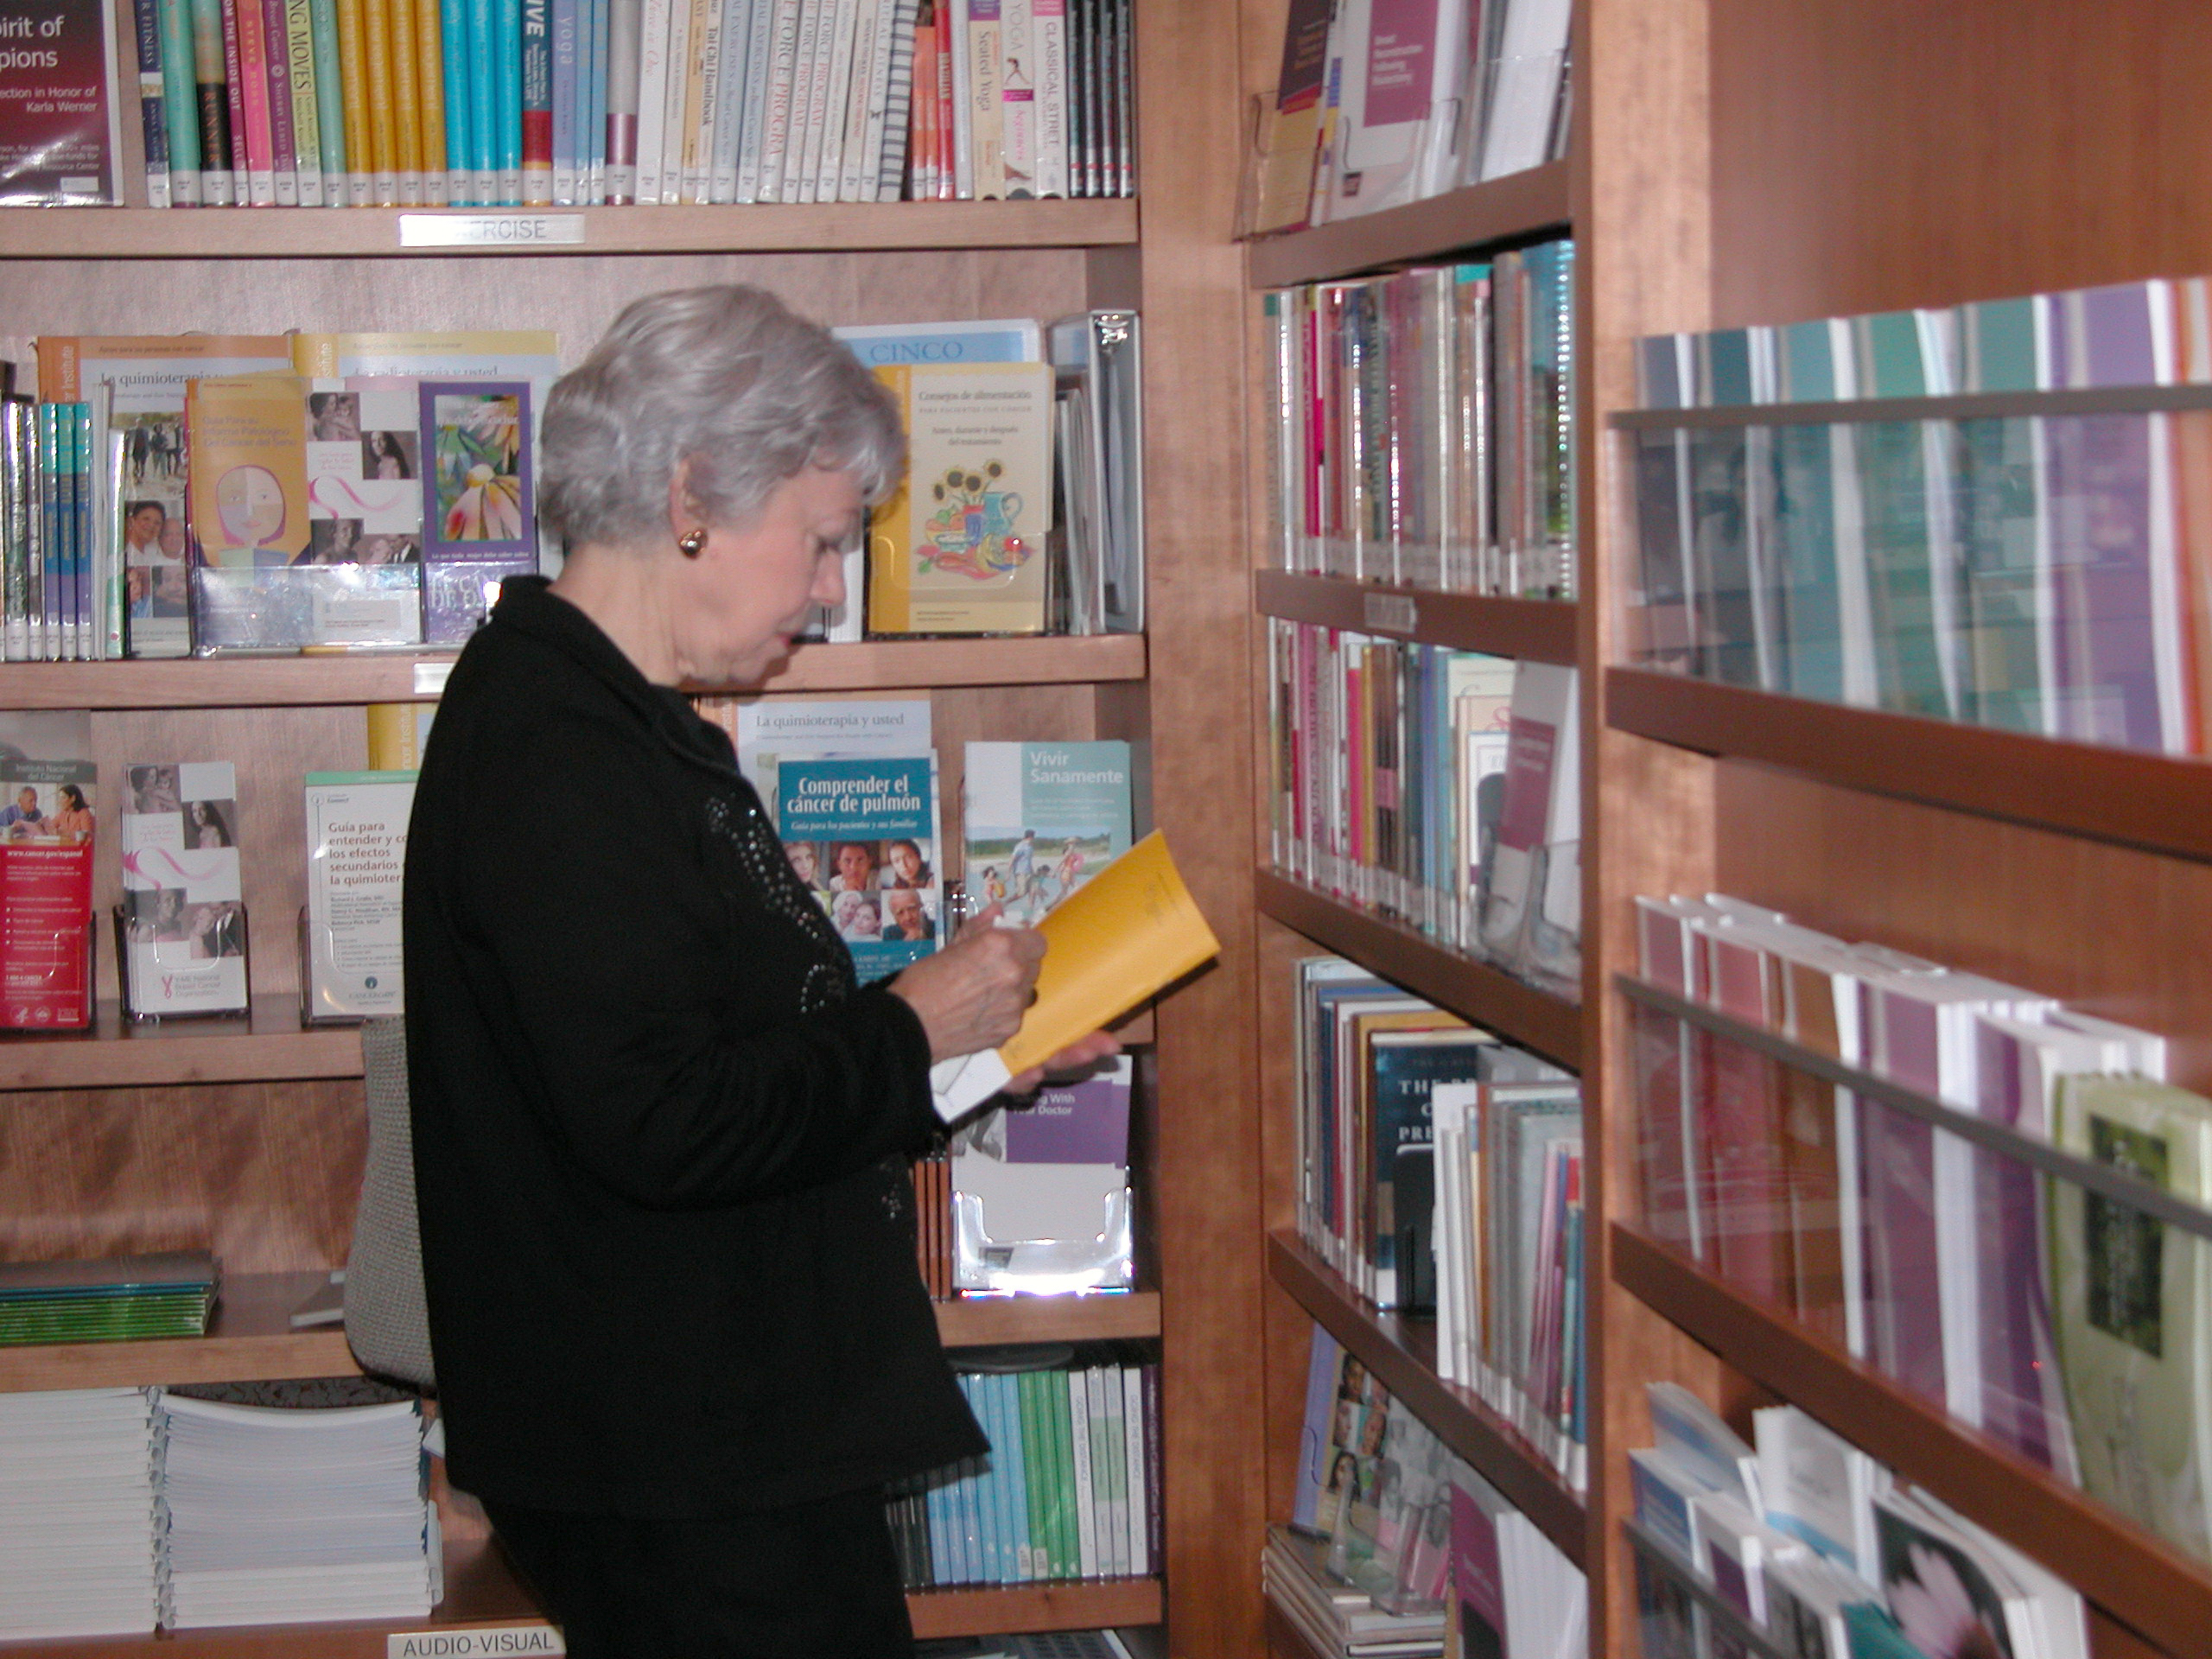 Photo of person reading book in PFRC education section